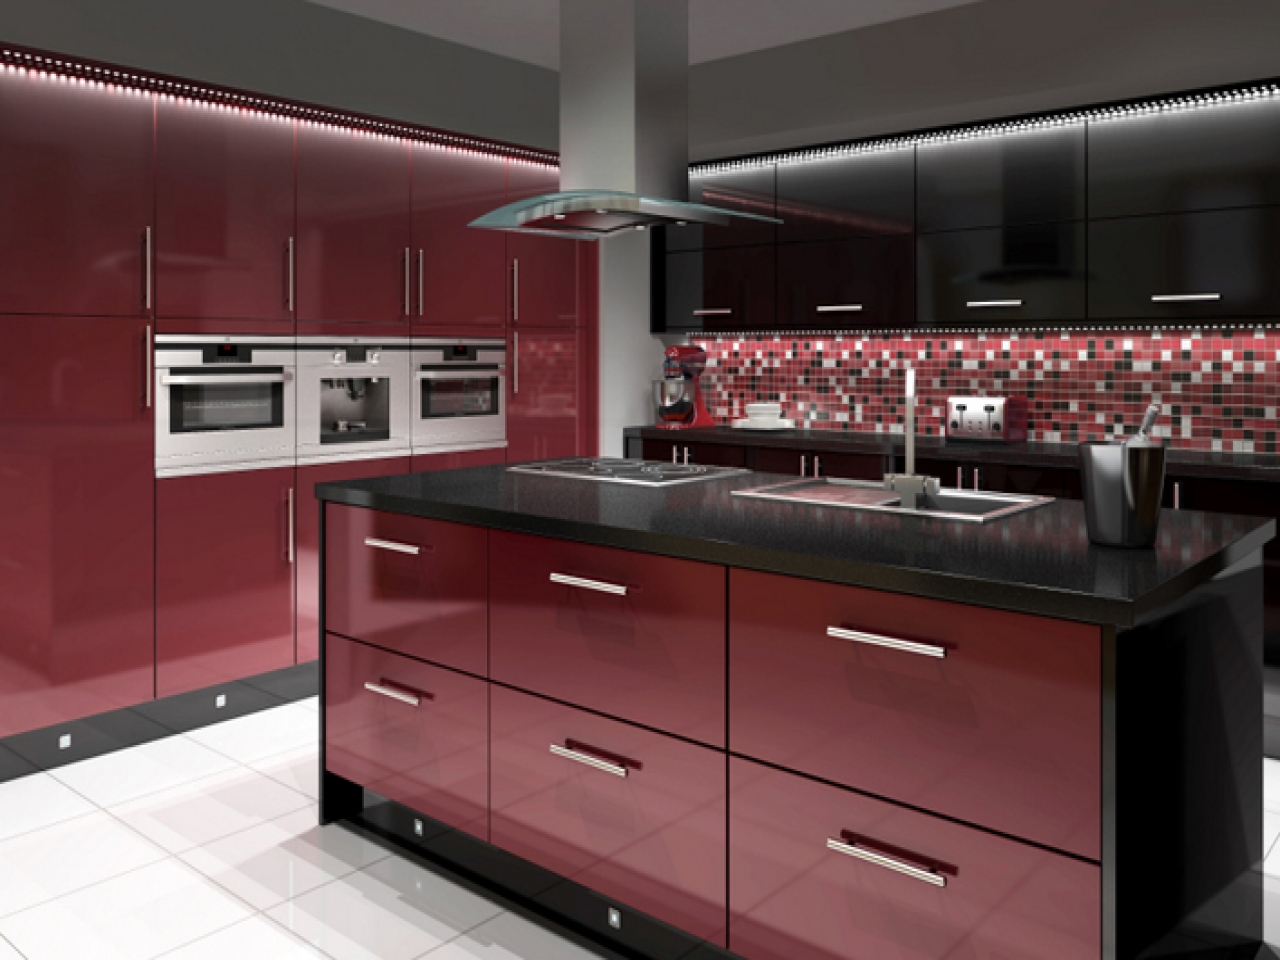 Black And Red Kitchen Design - ACNN DECOR